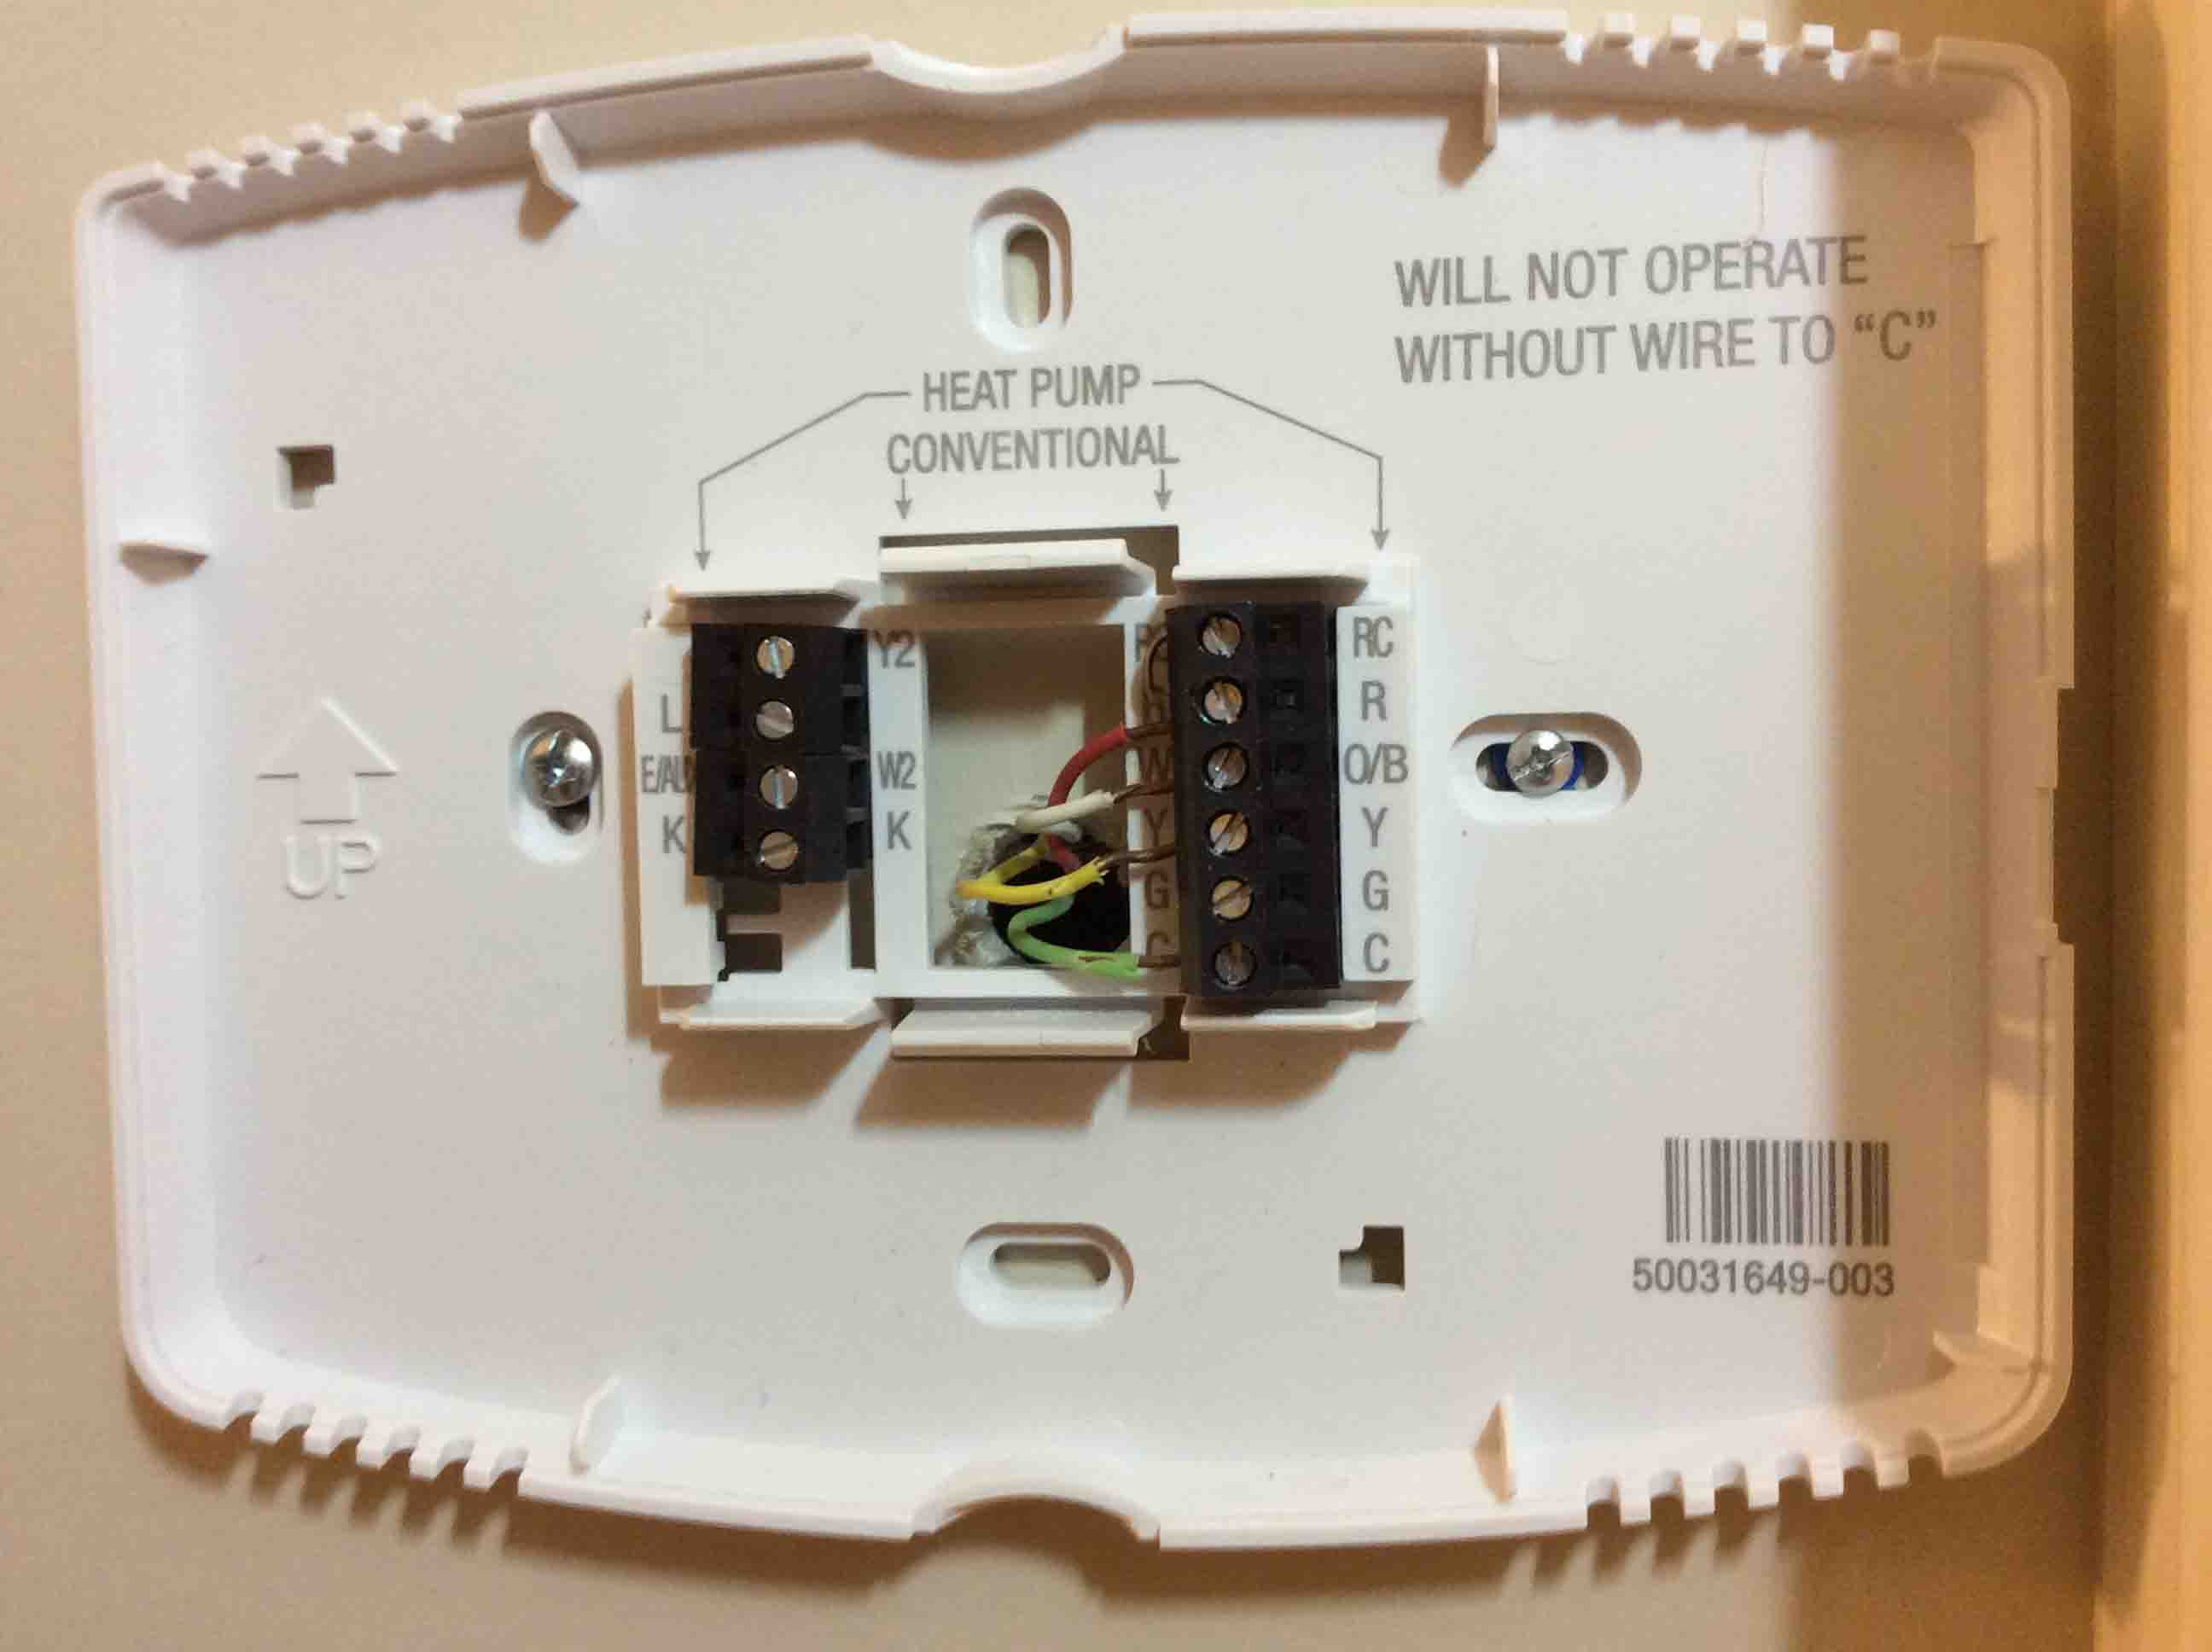 HoneywellWiFiThermostatWallPlateTypicalWiring_001 honeywell smart thermostat wiring instructions rth9580wf tom's Honeywell RTH9580WF Manual at n-0.co